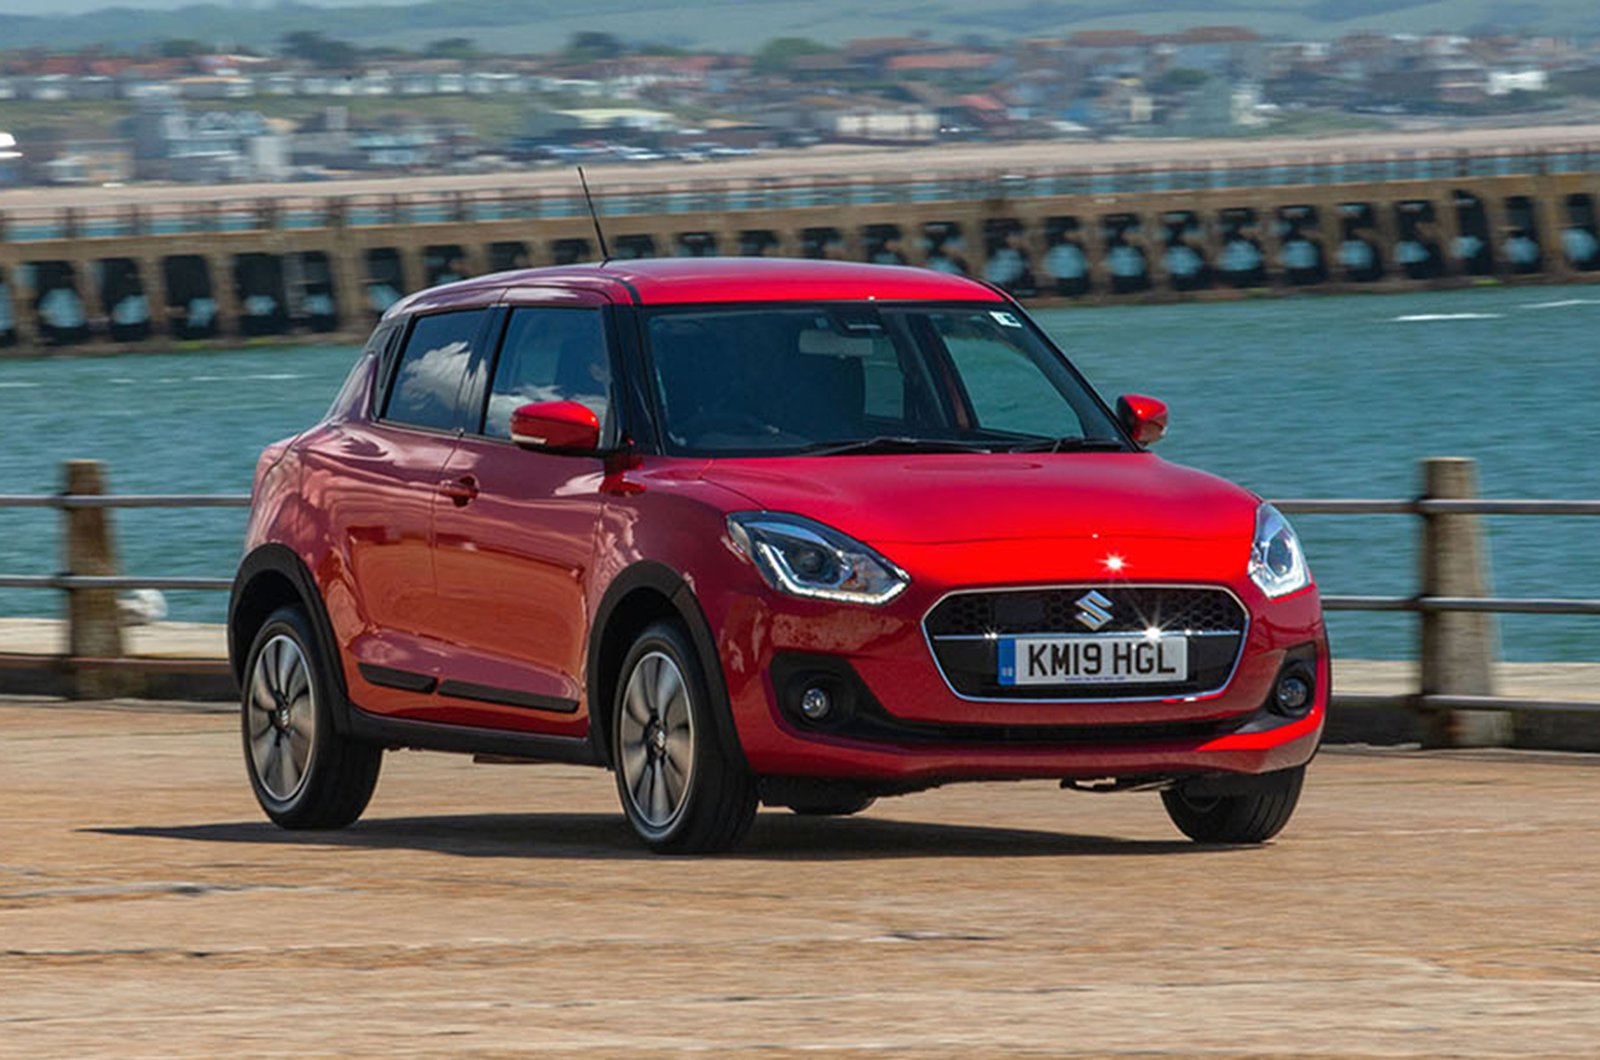 2019 Suzuki Swift SHVS 4x4 FIRST DRIVE review: price, specs and release date